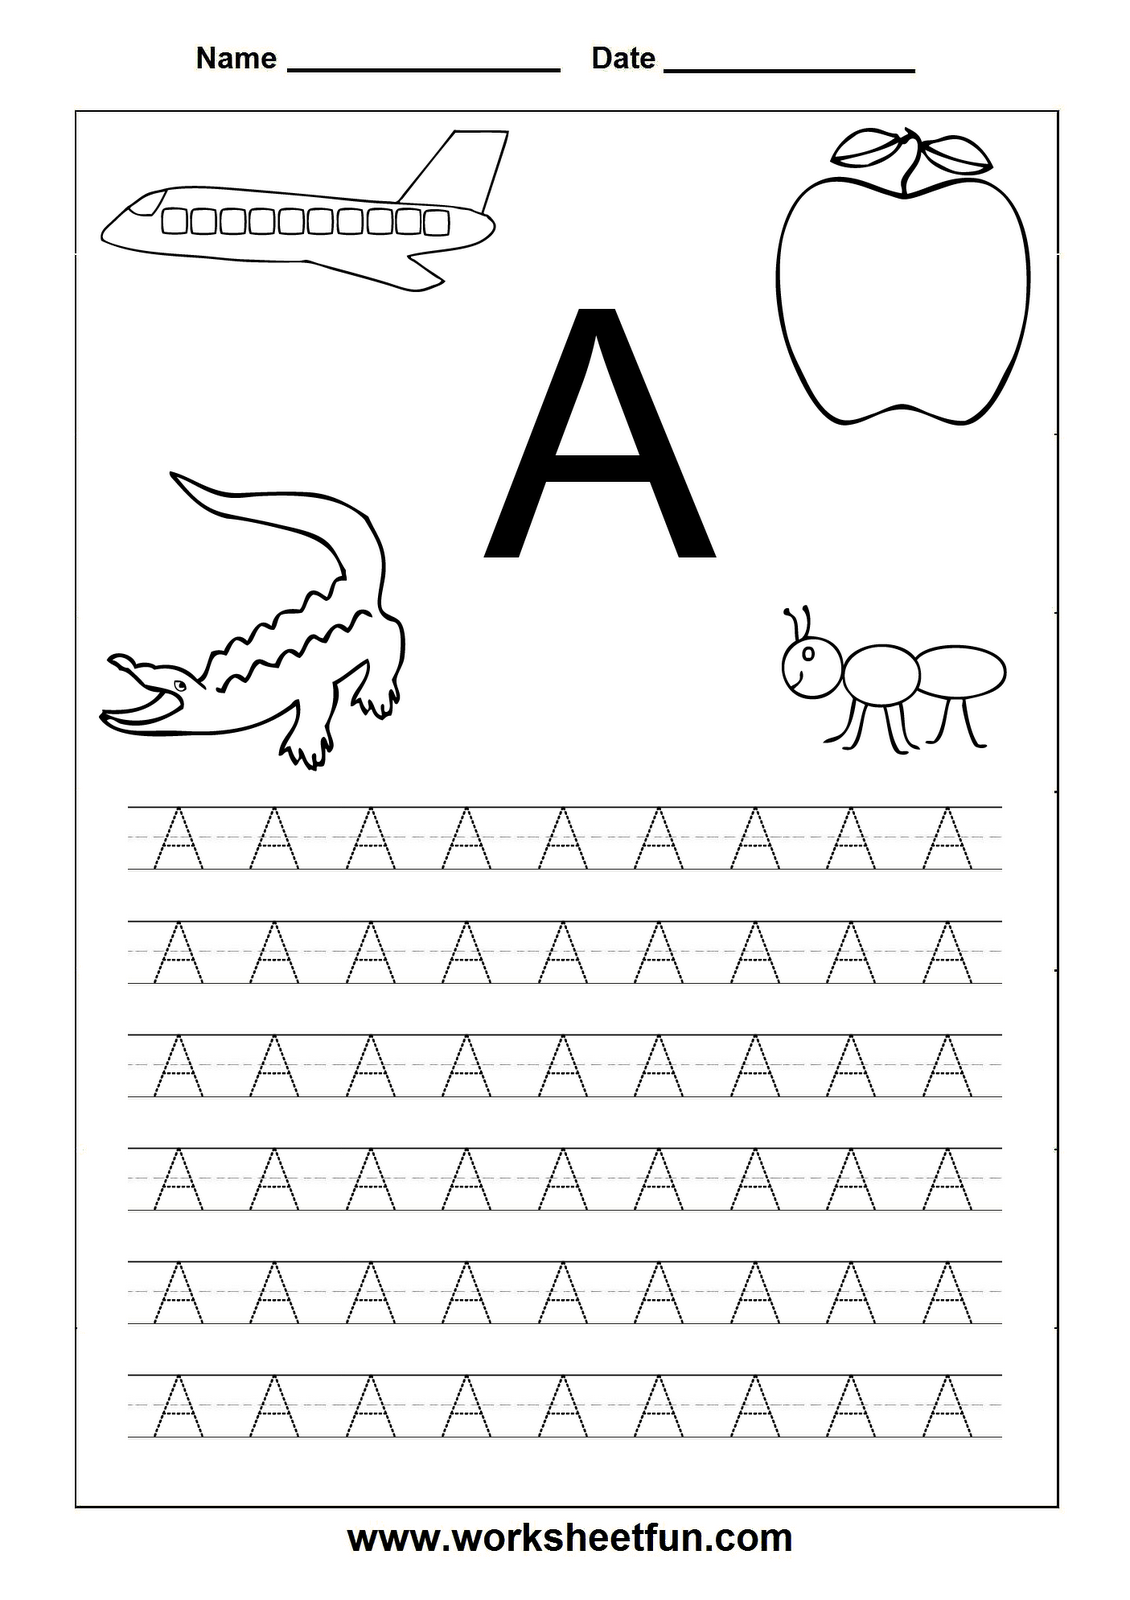 Worksheets Abc Traceable Worksheets letter worksheets for kindergarten printable letters pinterest tracing and more free preschoolers